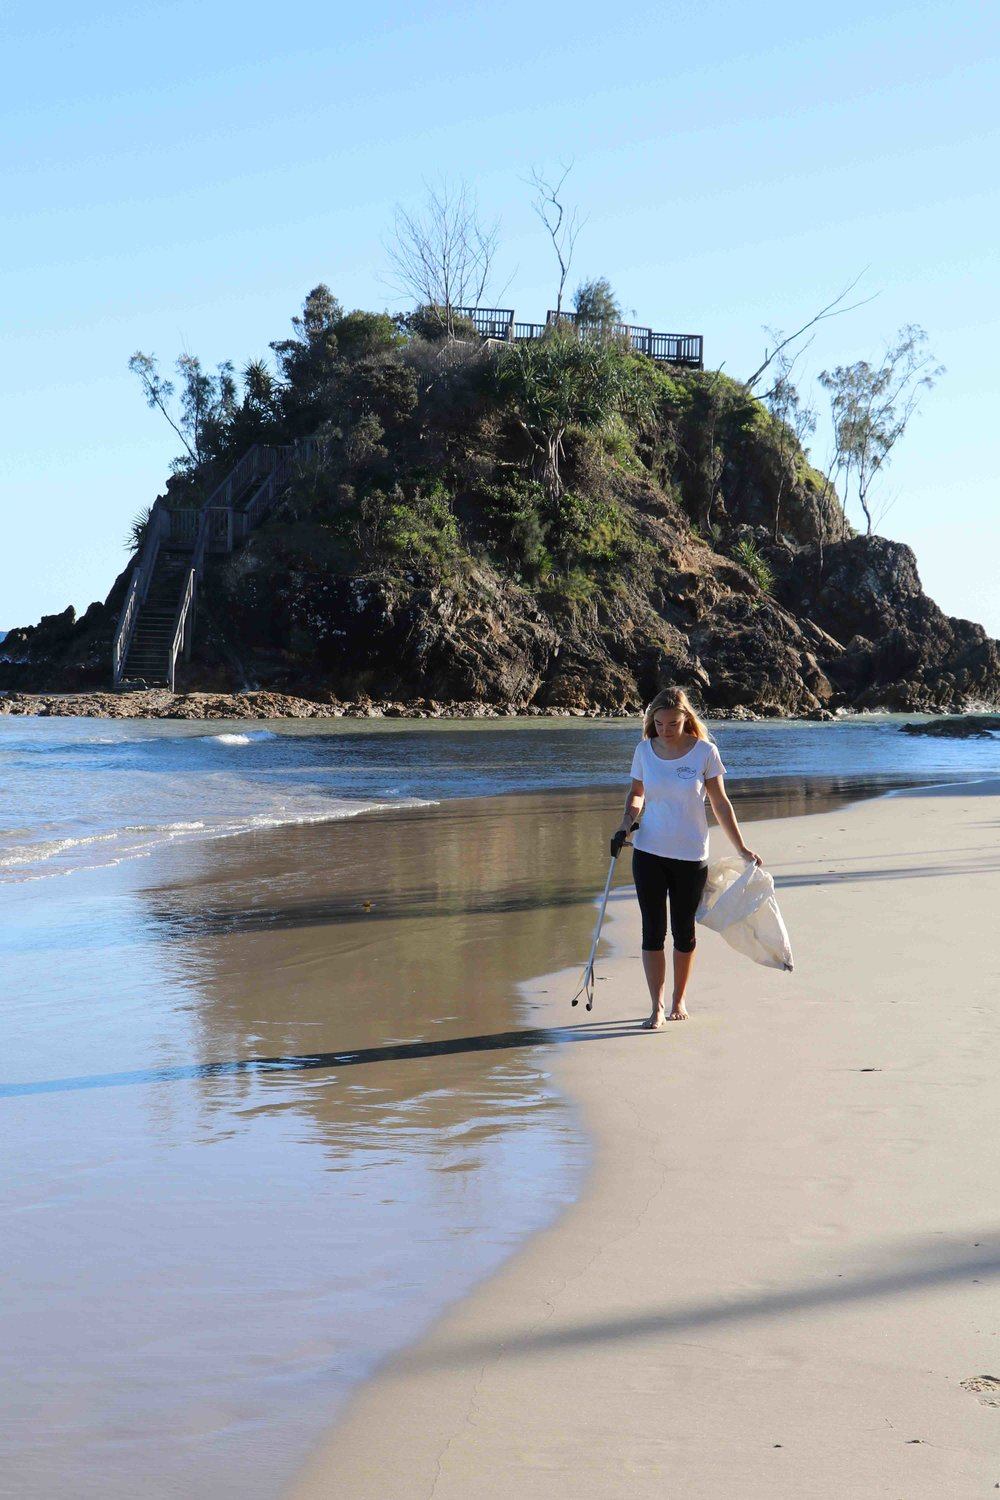 Zoe collecting cigarette butts for our joint local litter checks near The Pass in Byron Bay.